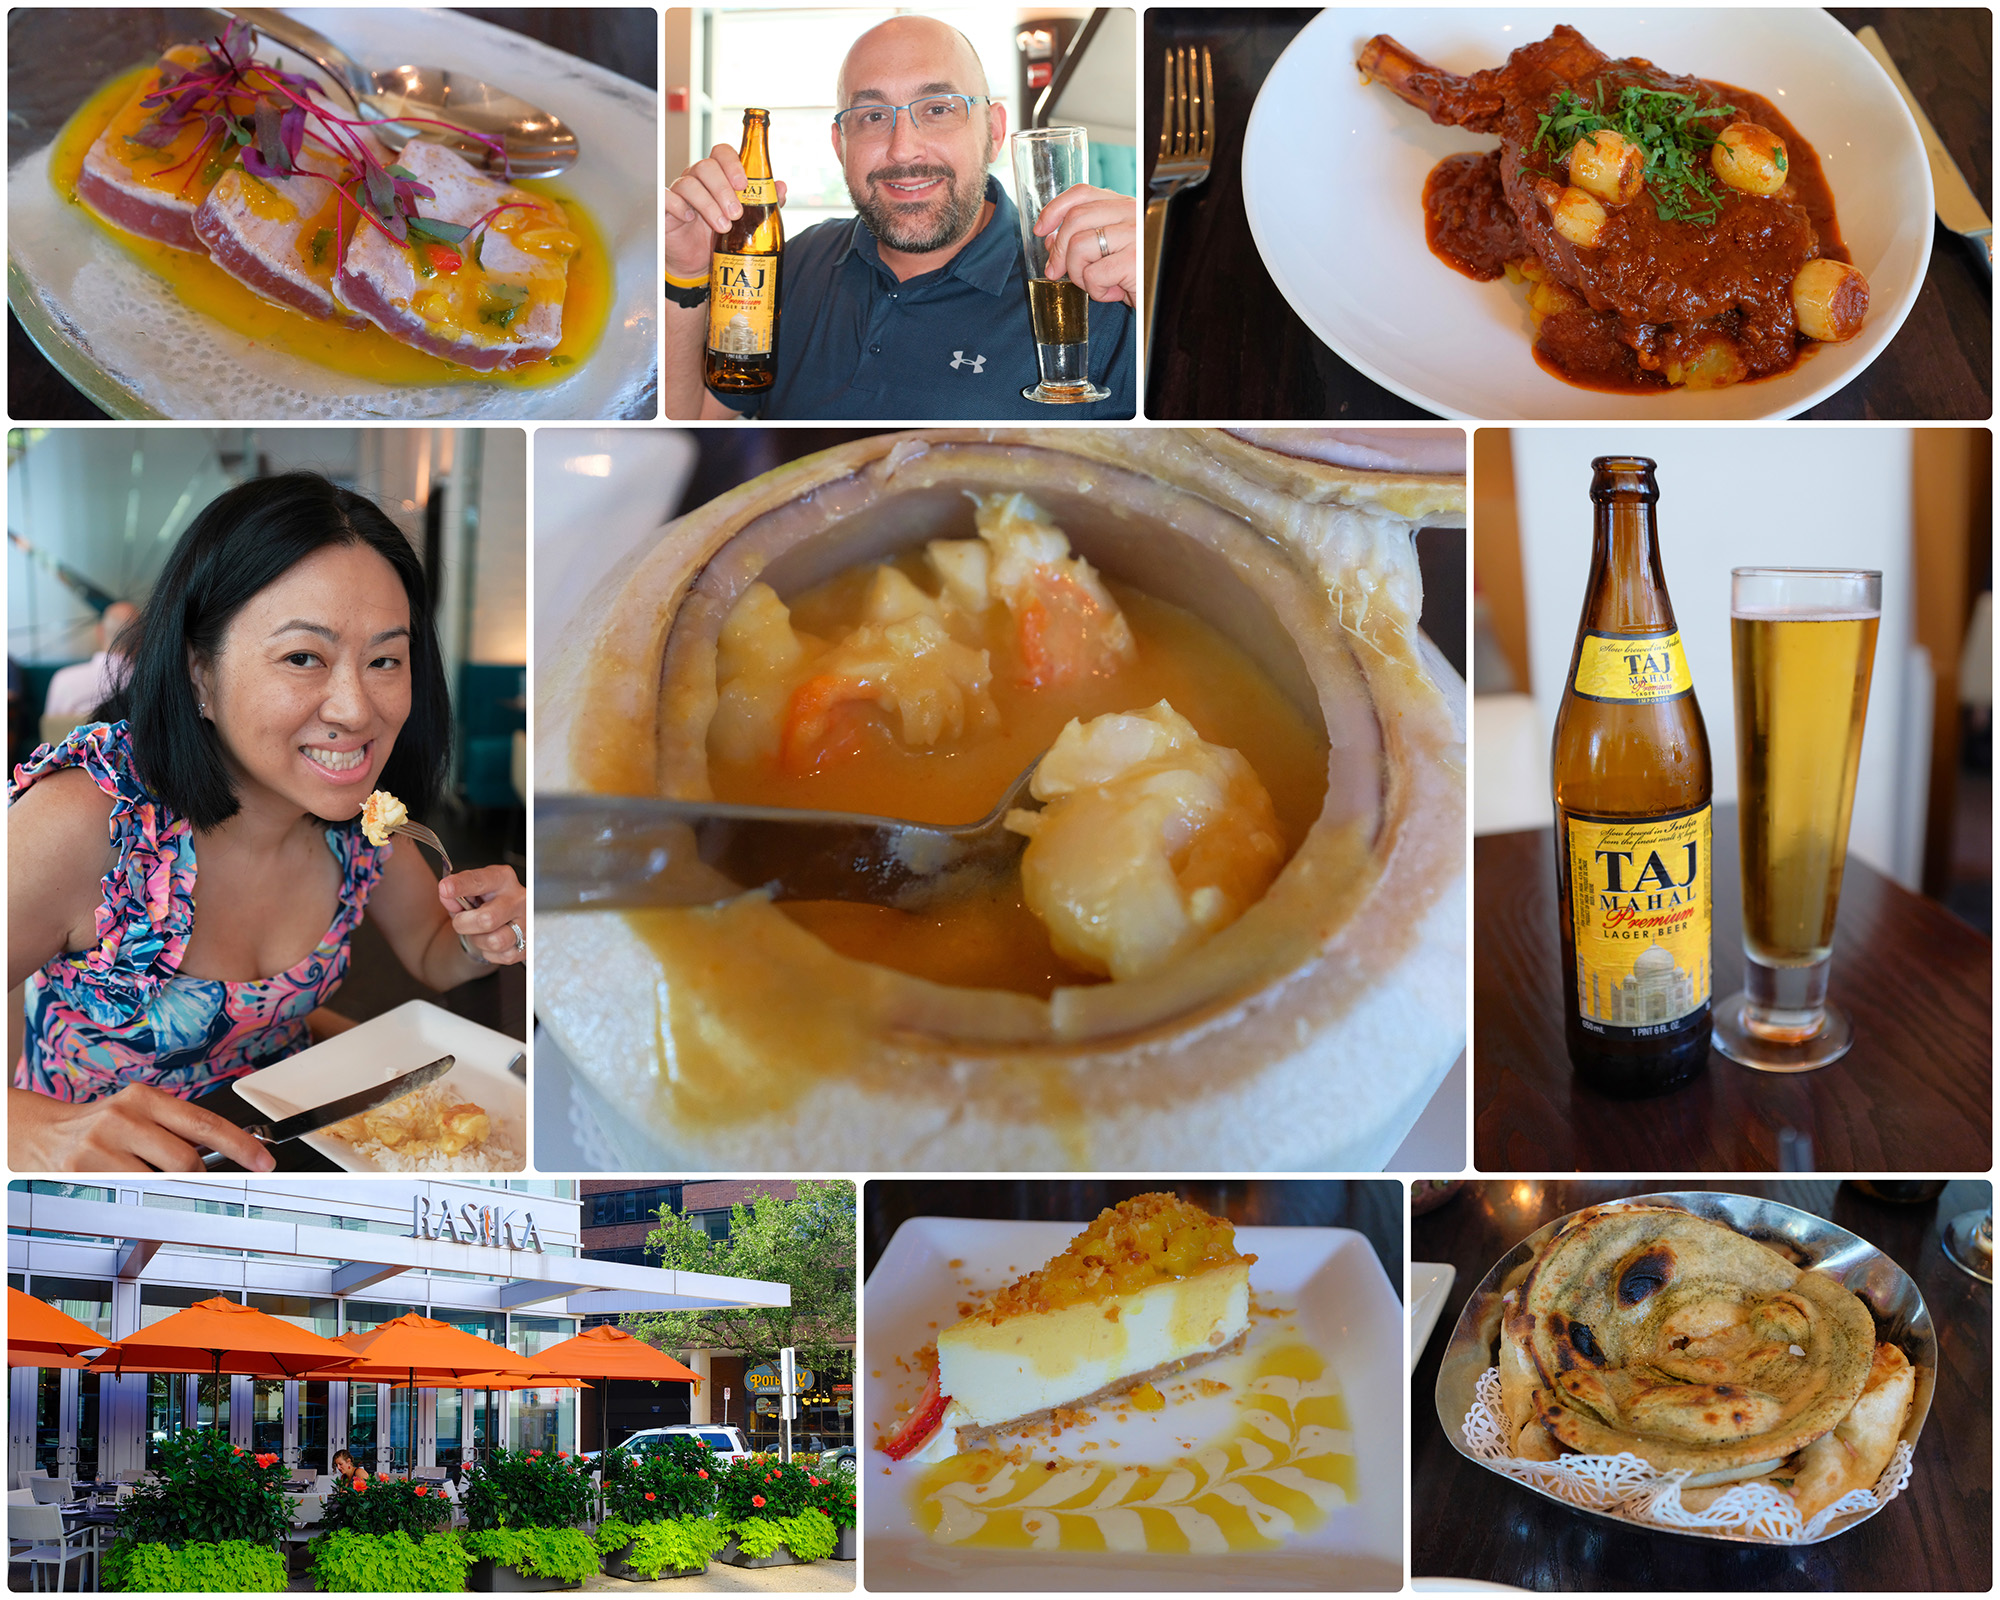 Rasika West End - no photo album, just a quick collage!